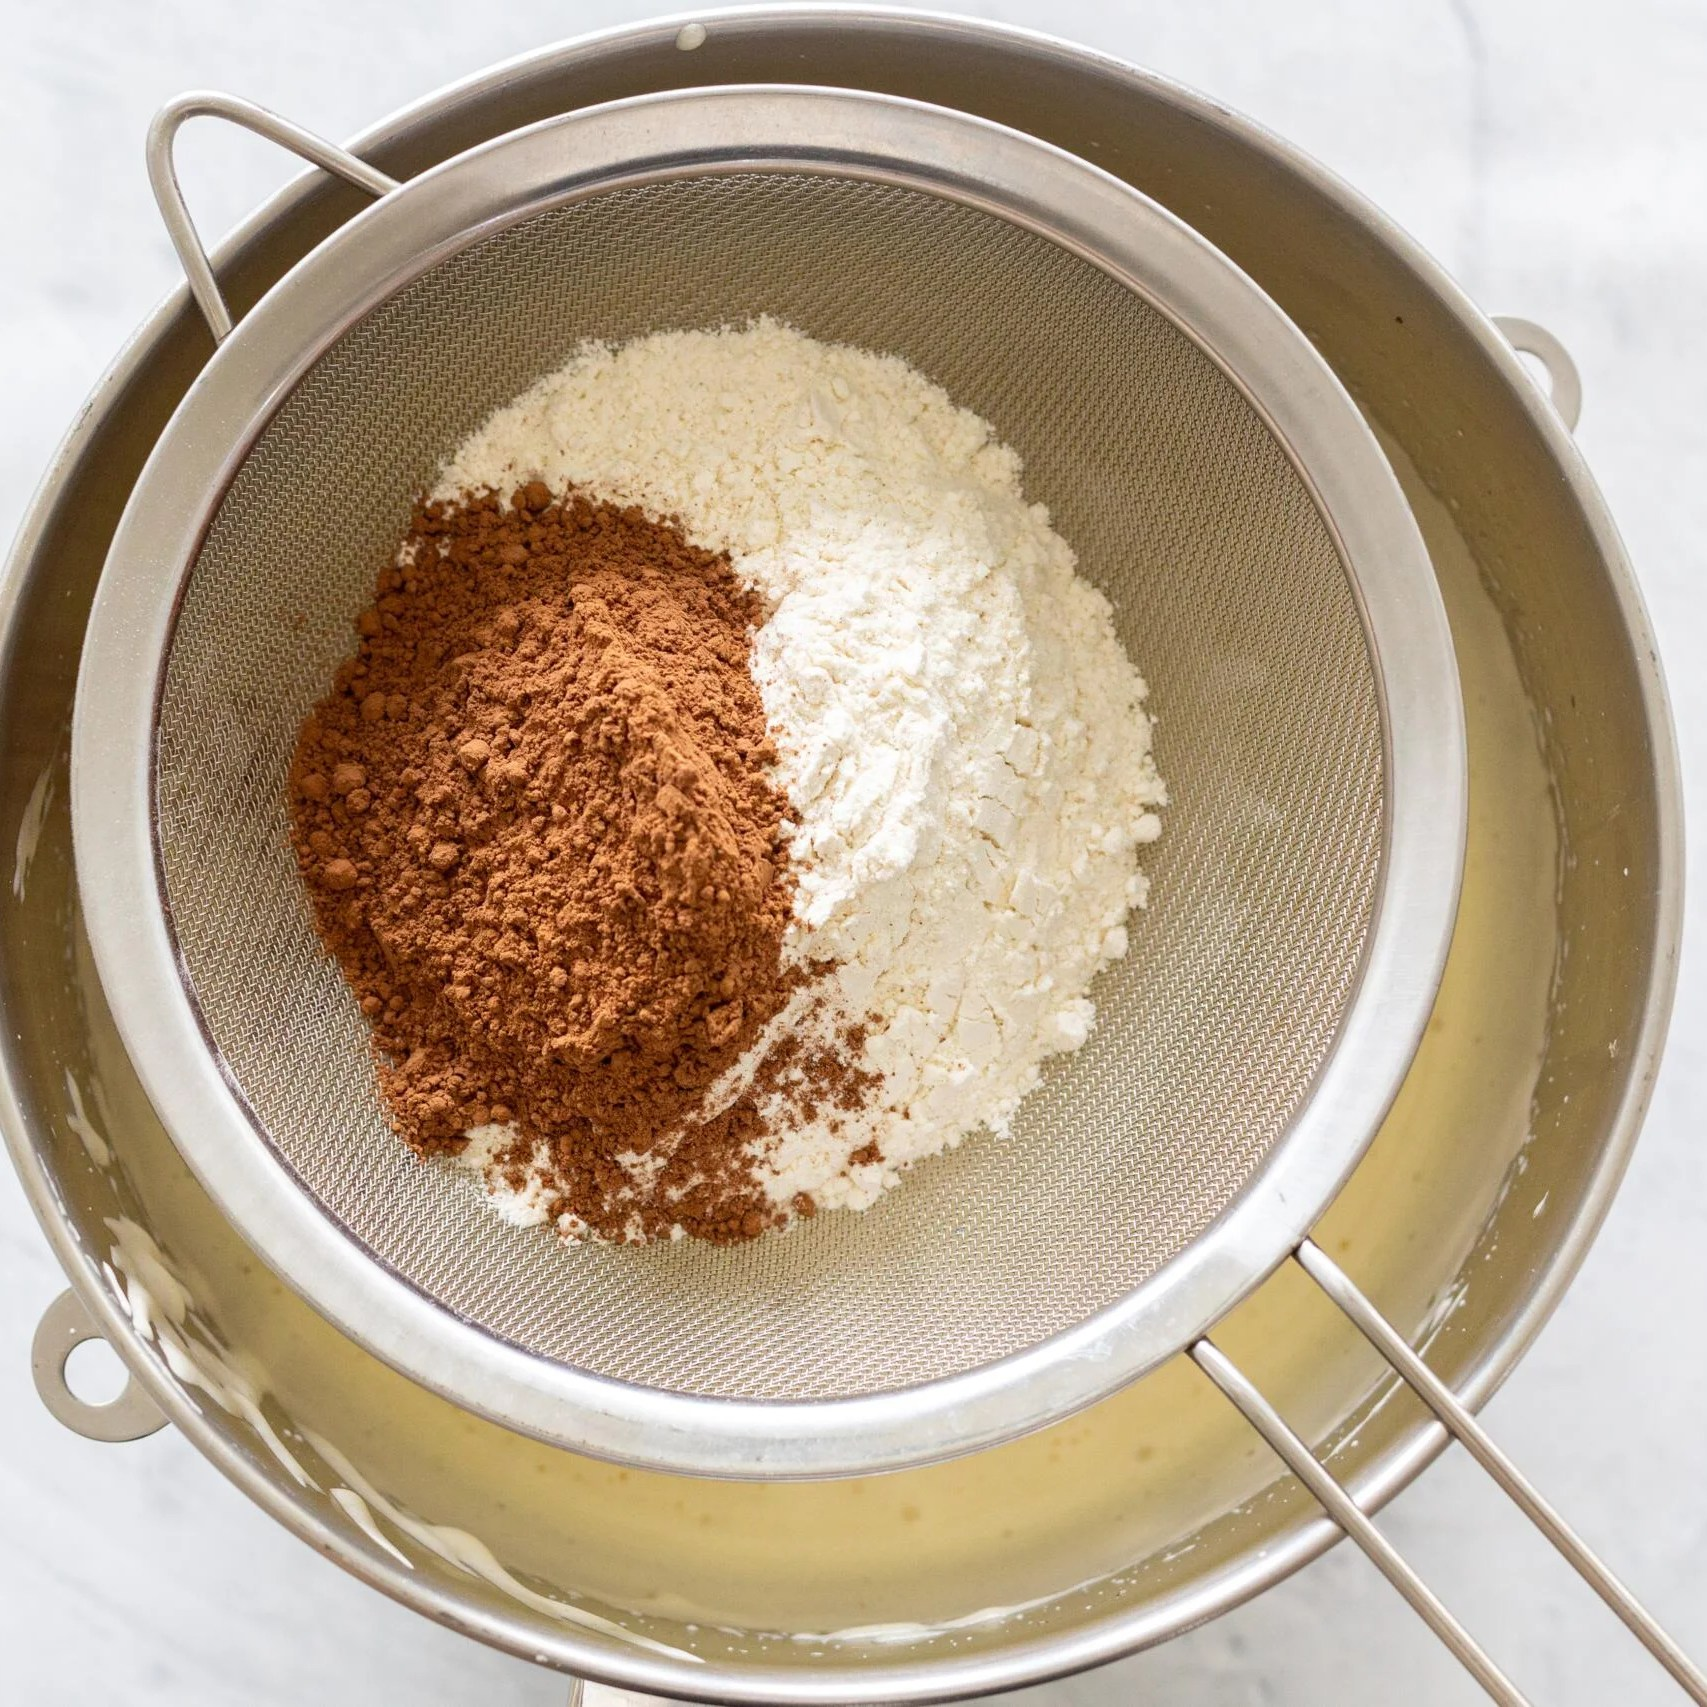 flour and cocoa in a sifter